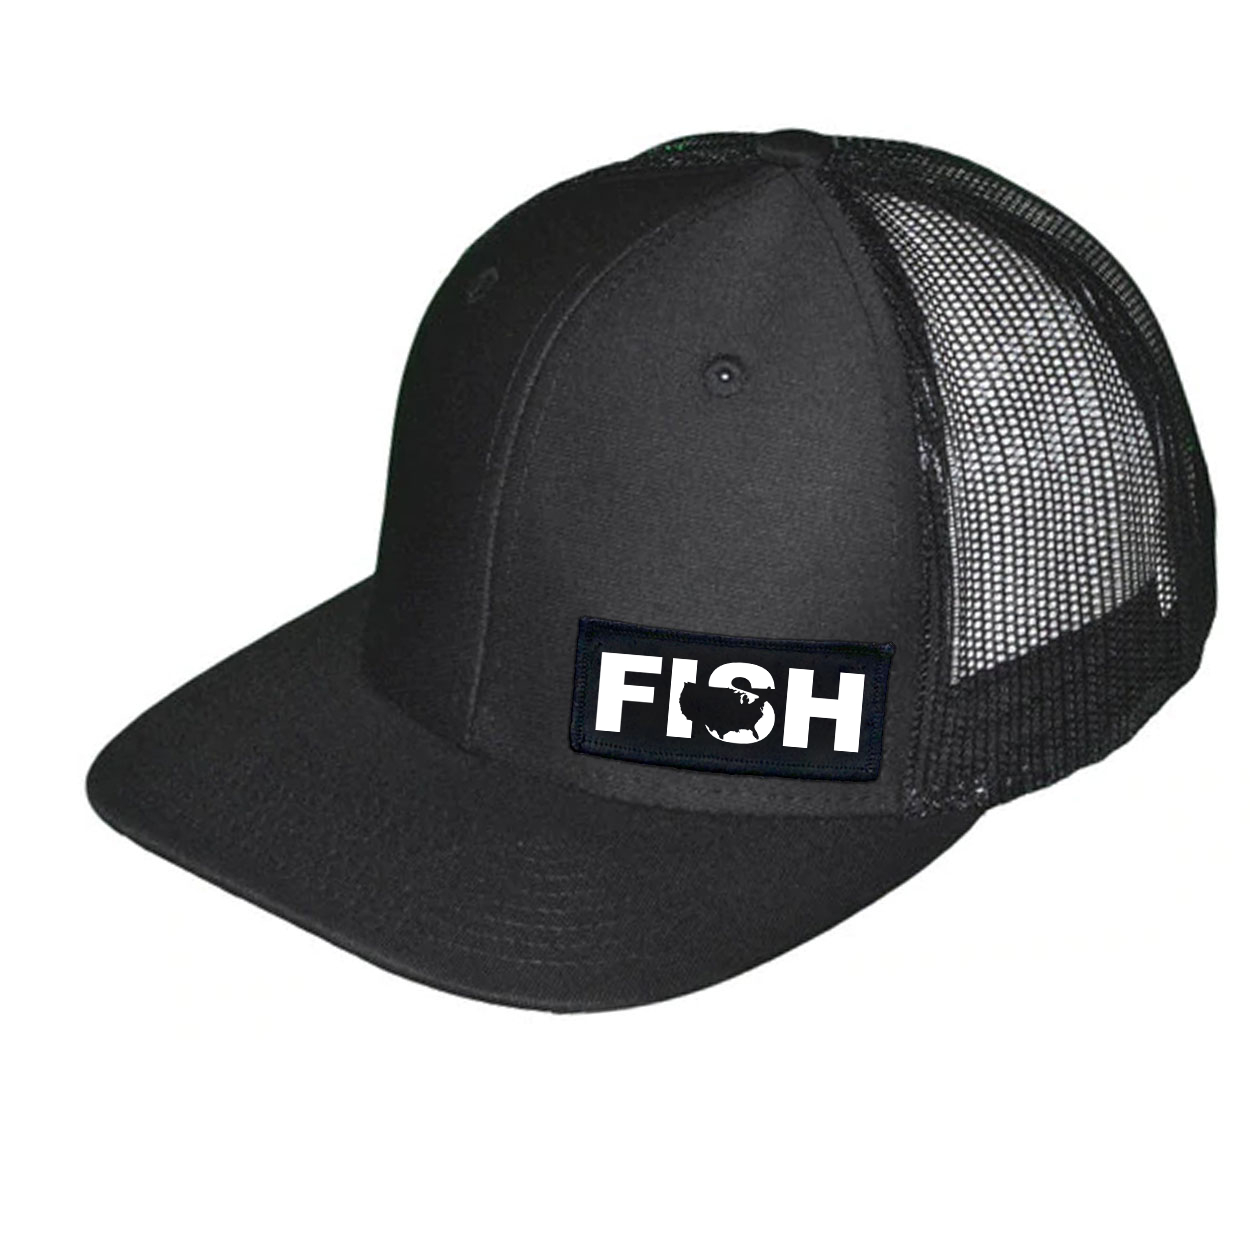 Fish United States Night Out Woven Patch Snapback Trucker Hat Black (White Logo)